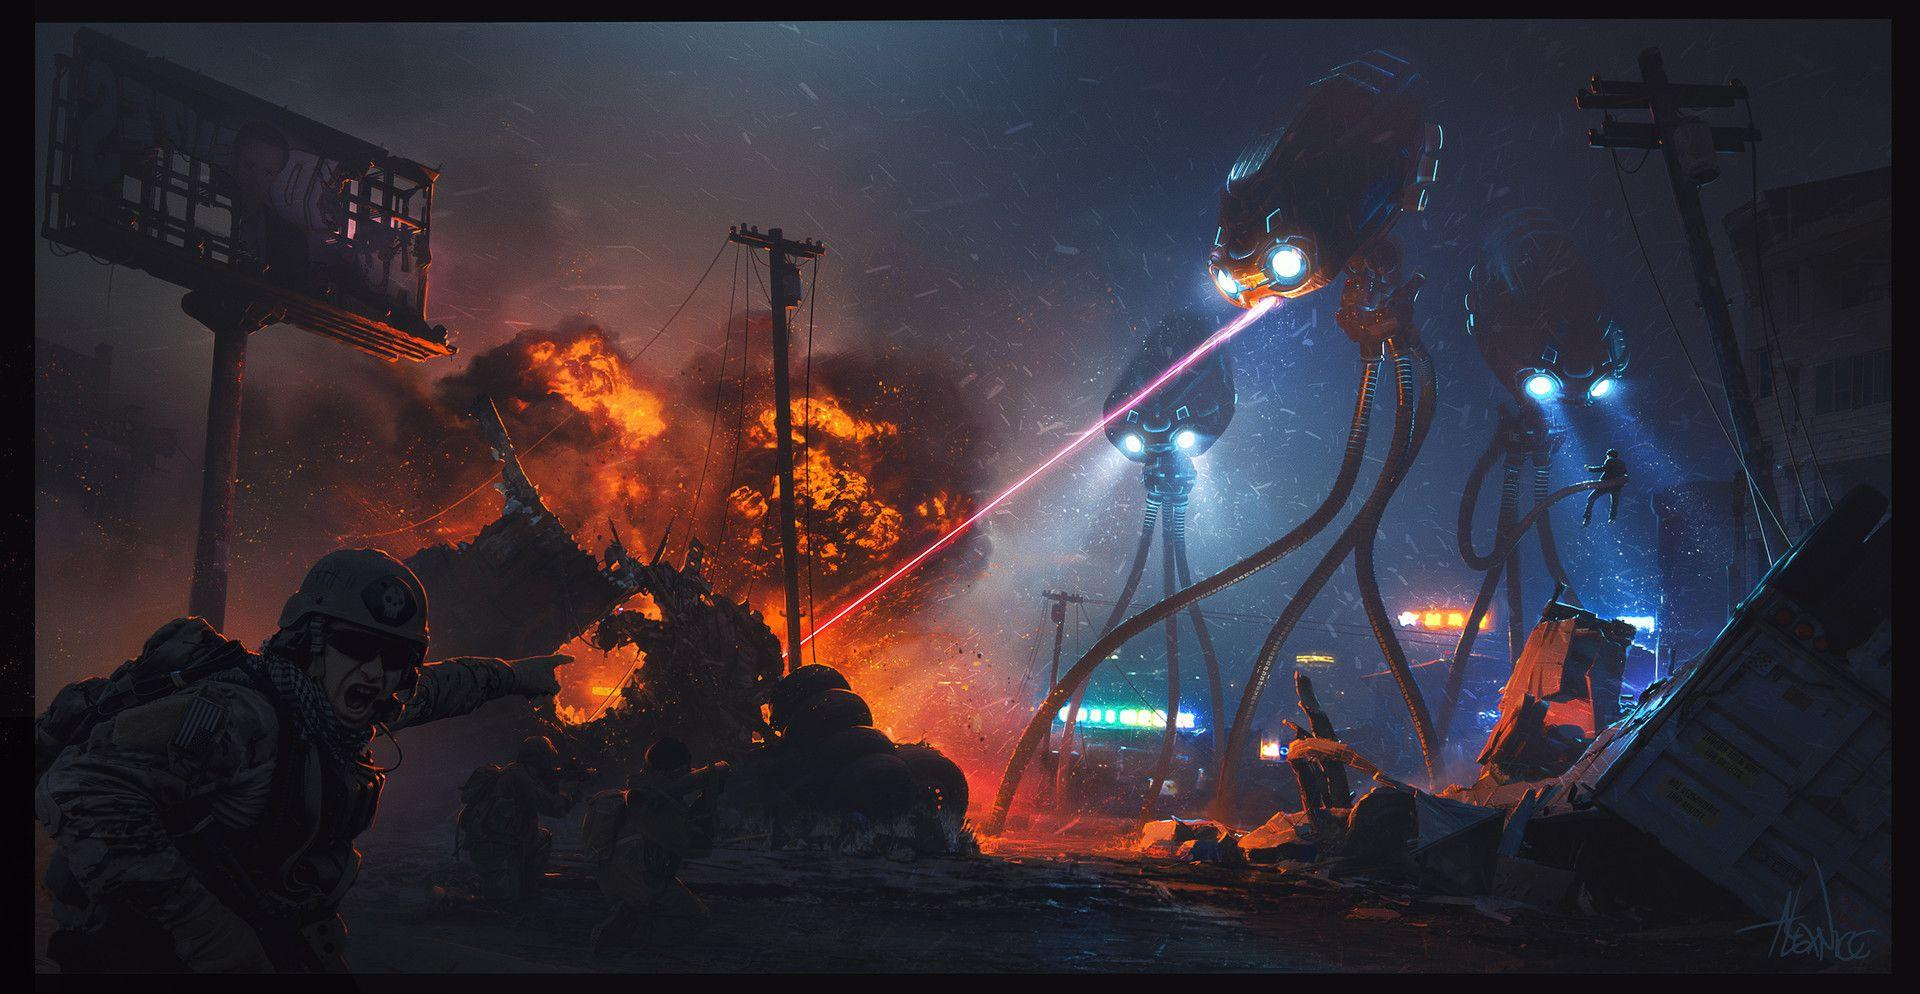 War Of The Worlds Wallpapers Wallpaper Cave